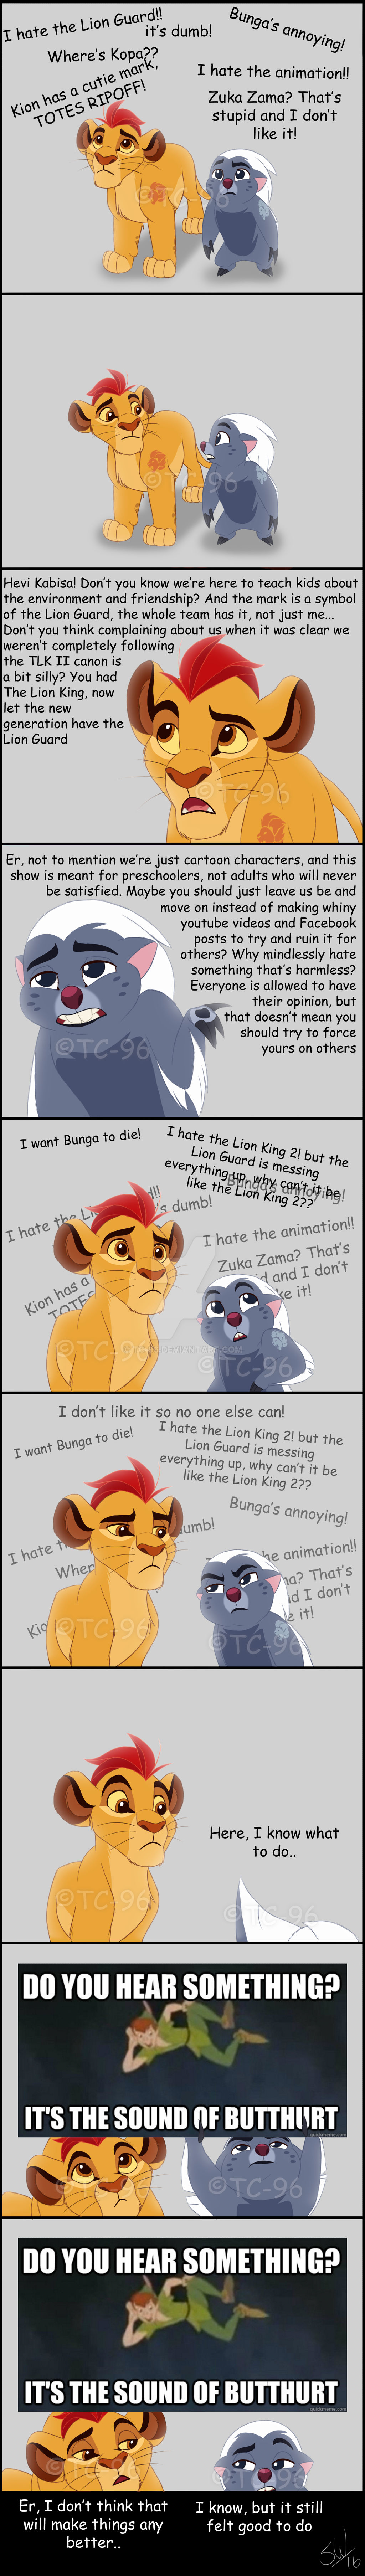 Opinions on The Lion Guard